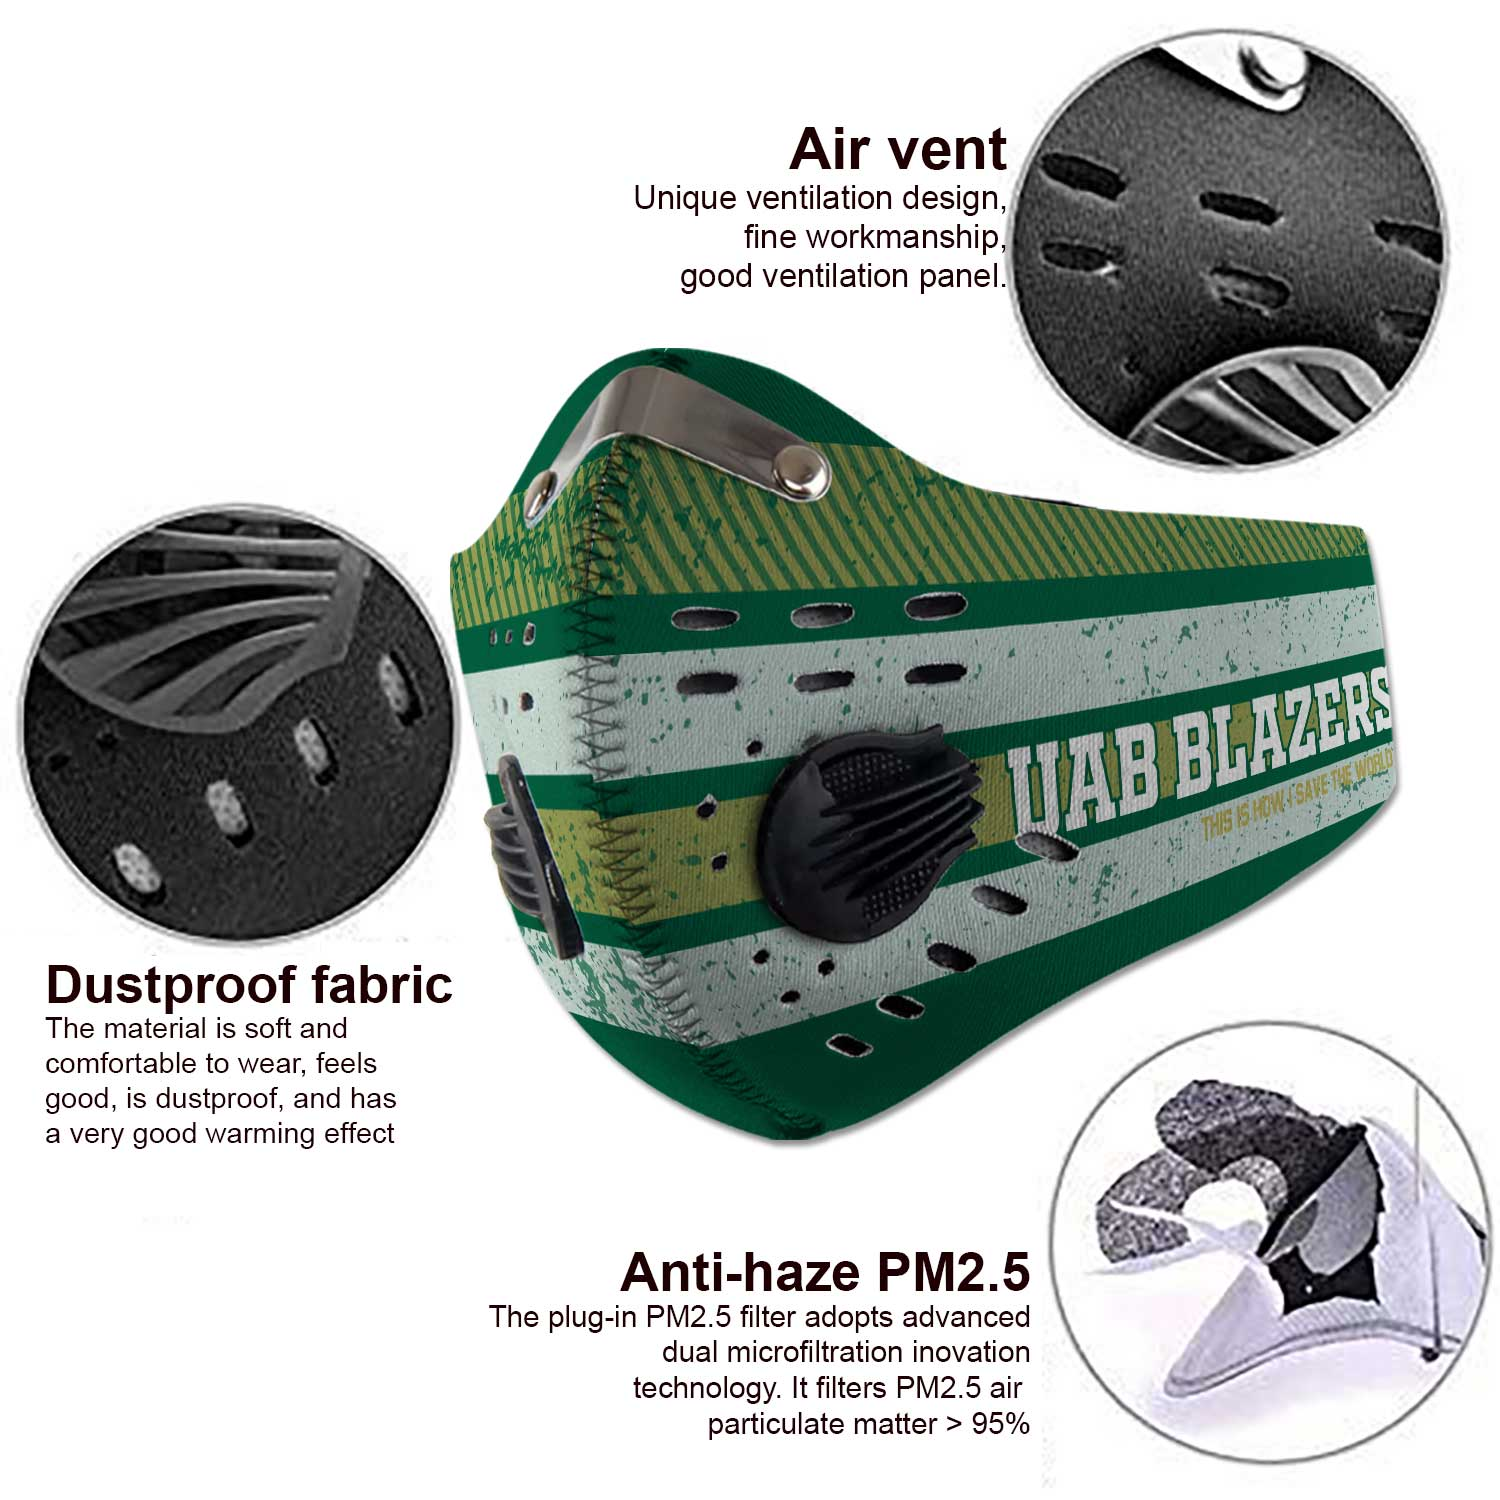 Uab blazers this is how i save the world carbon filter face mask 4